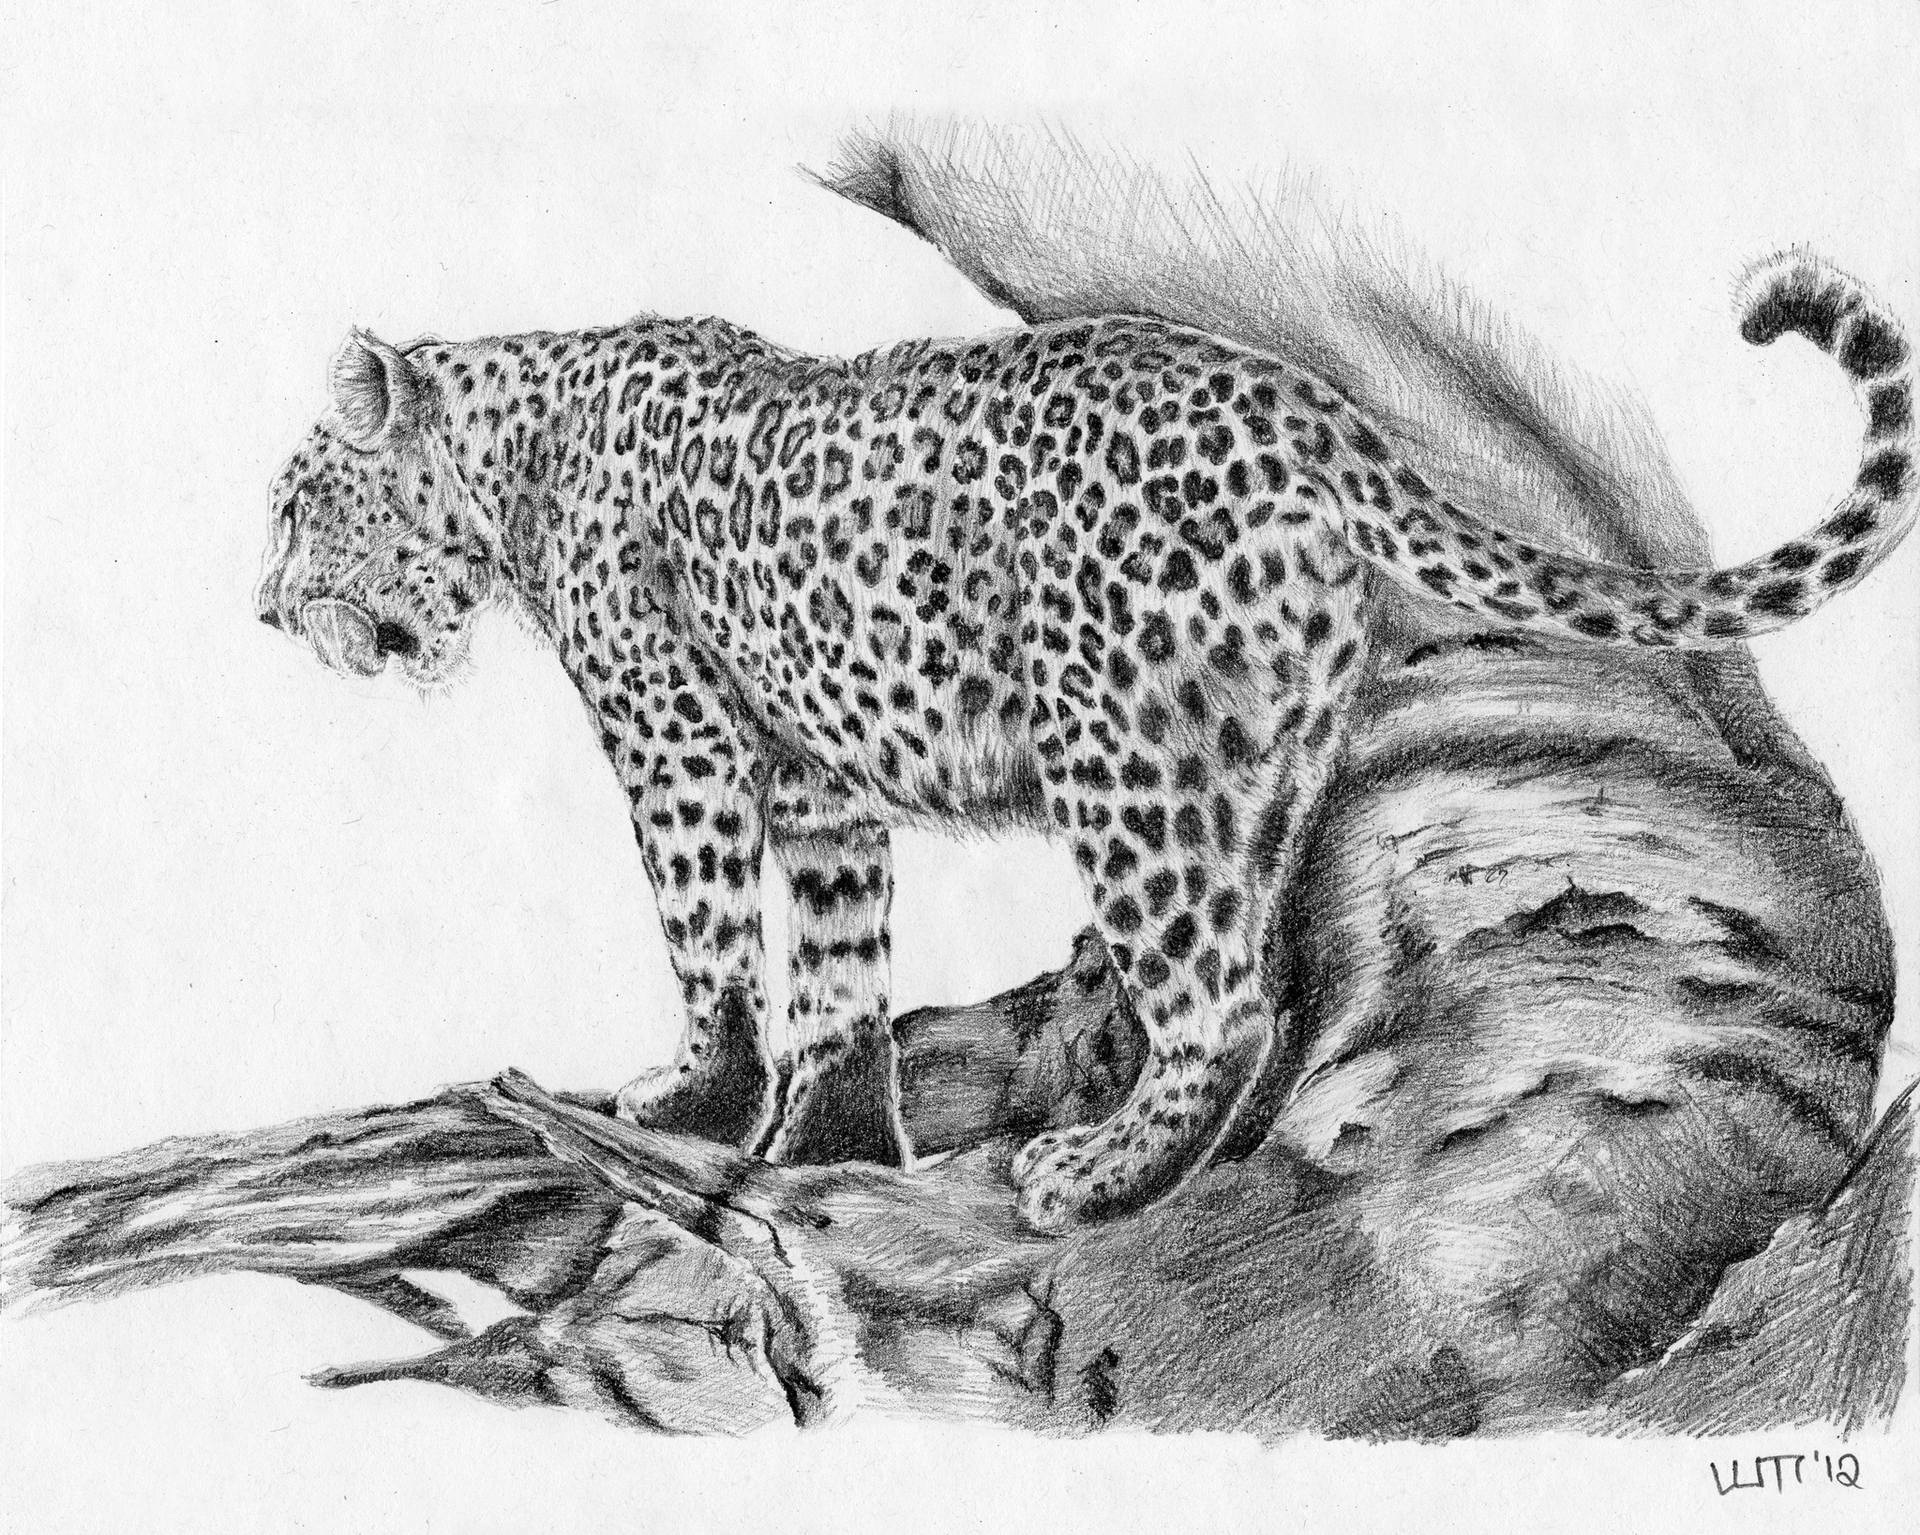 leopard drawings 21 best gary hodges images on pinterest pencil art leopard drawings